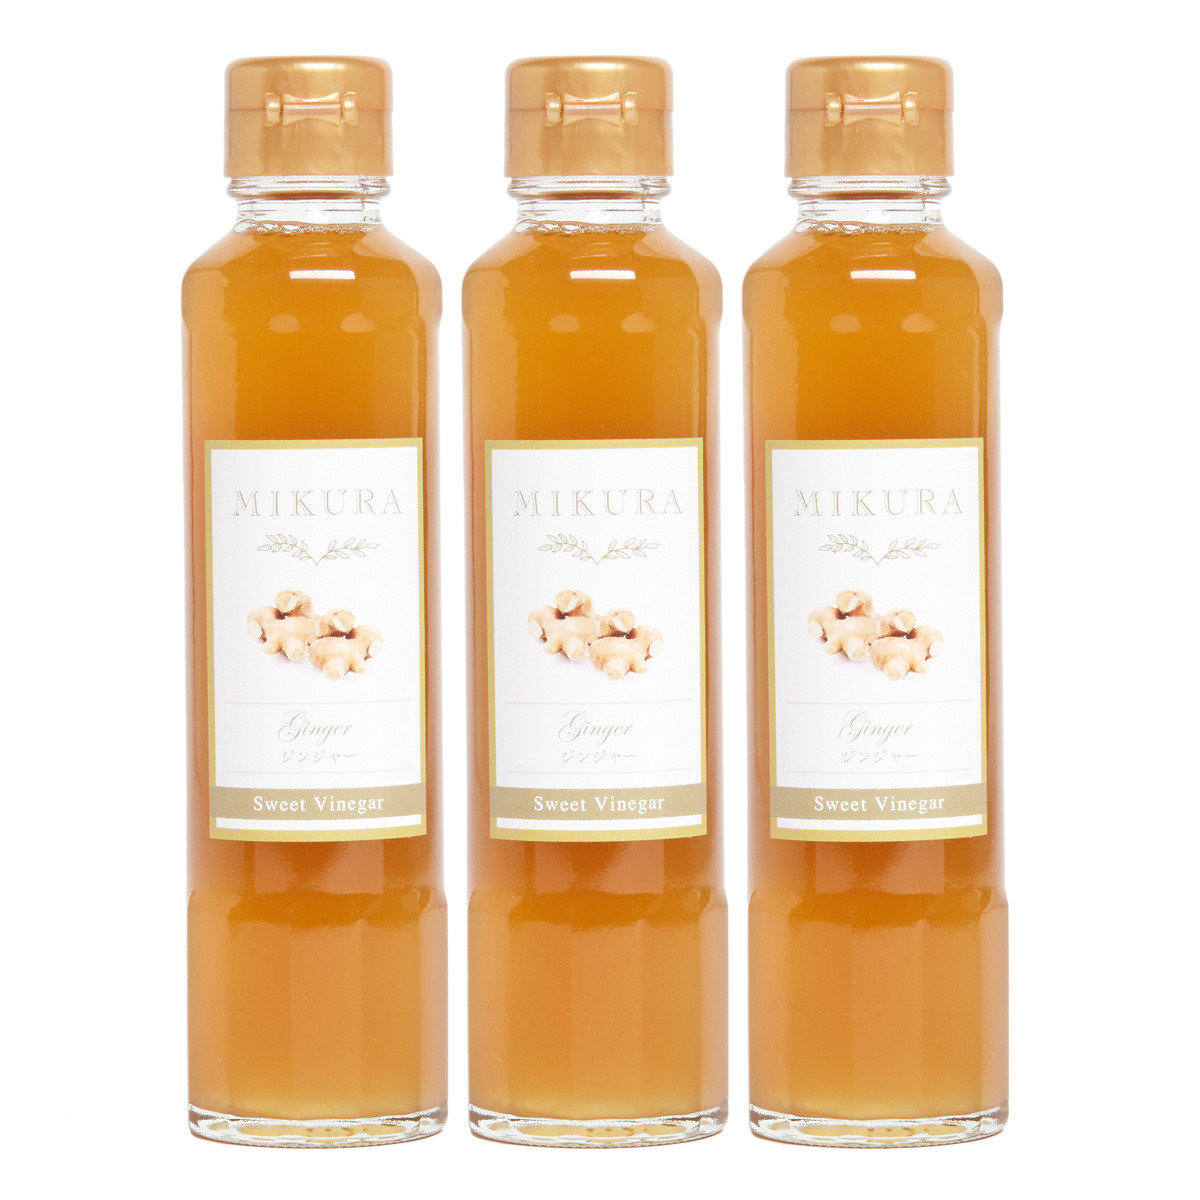 Sweet Vinegar MIKURA 生薑甜醋 (250克 x 3)